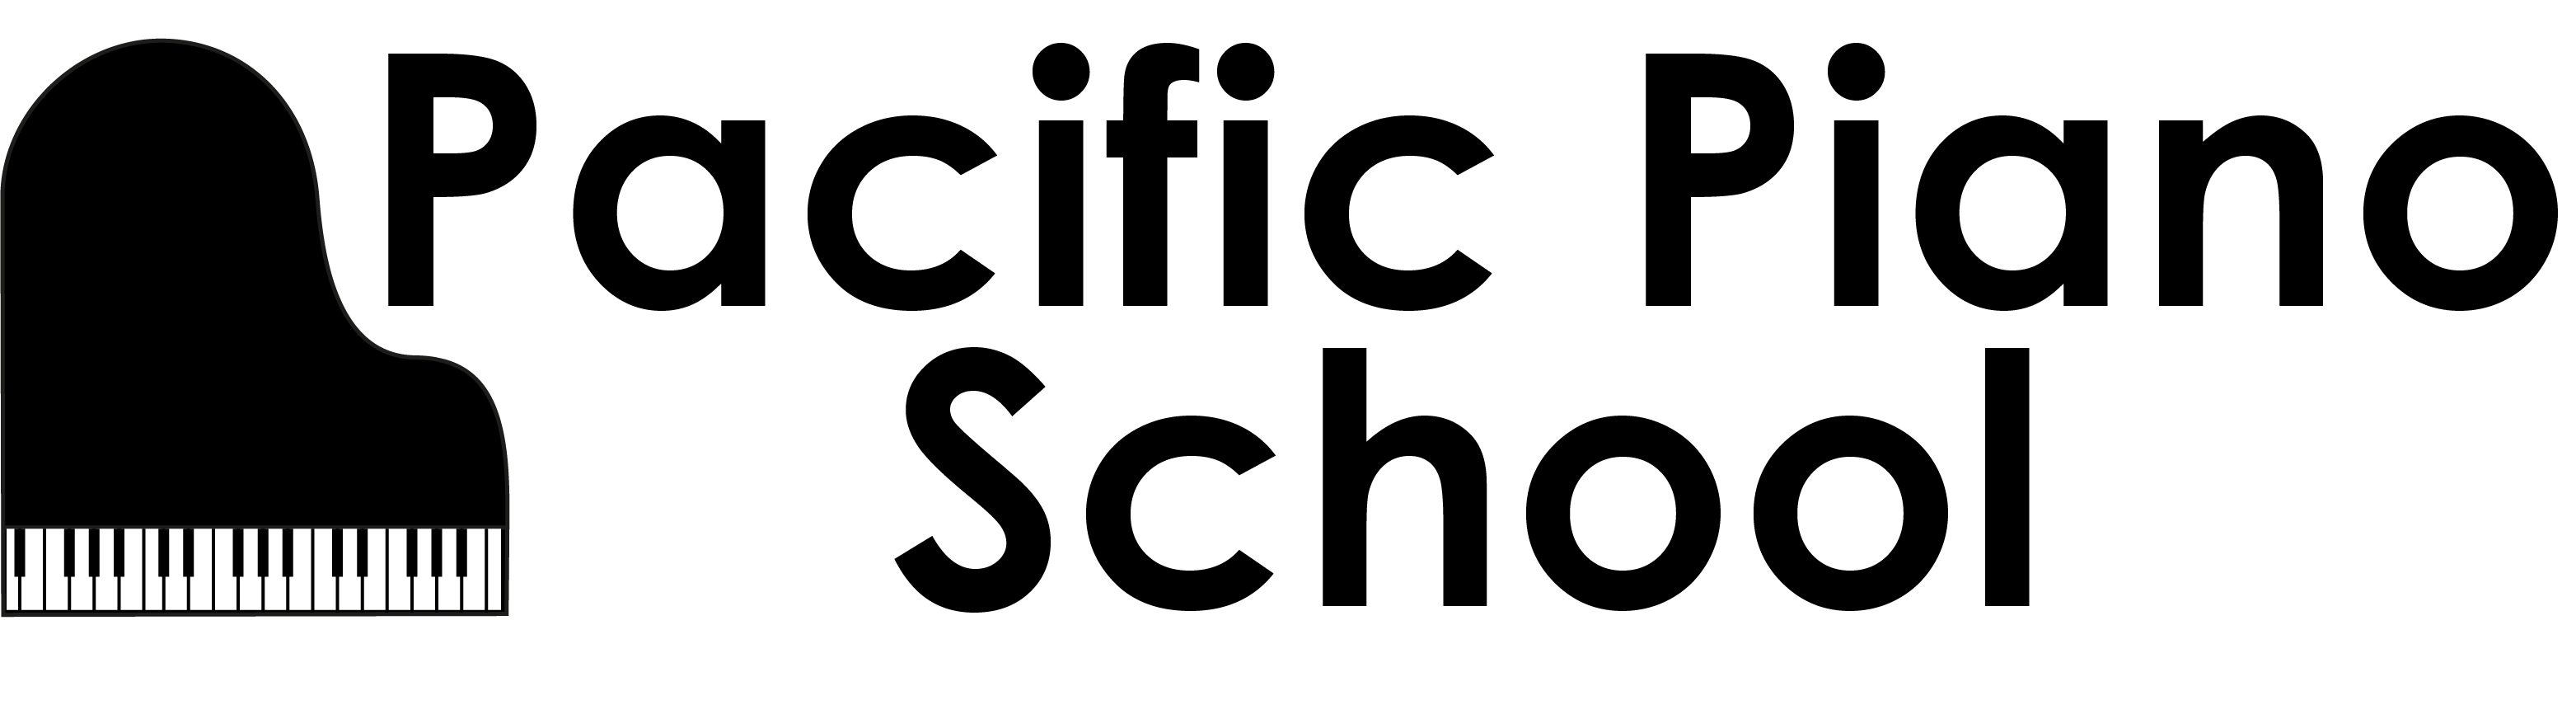 Pacific Piano School